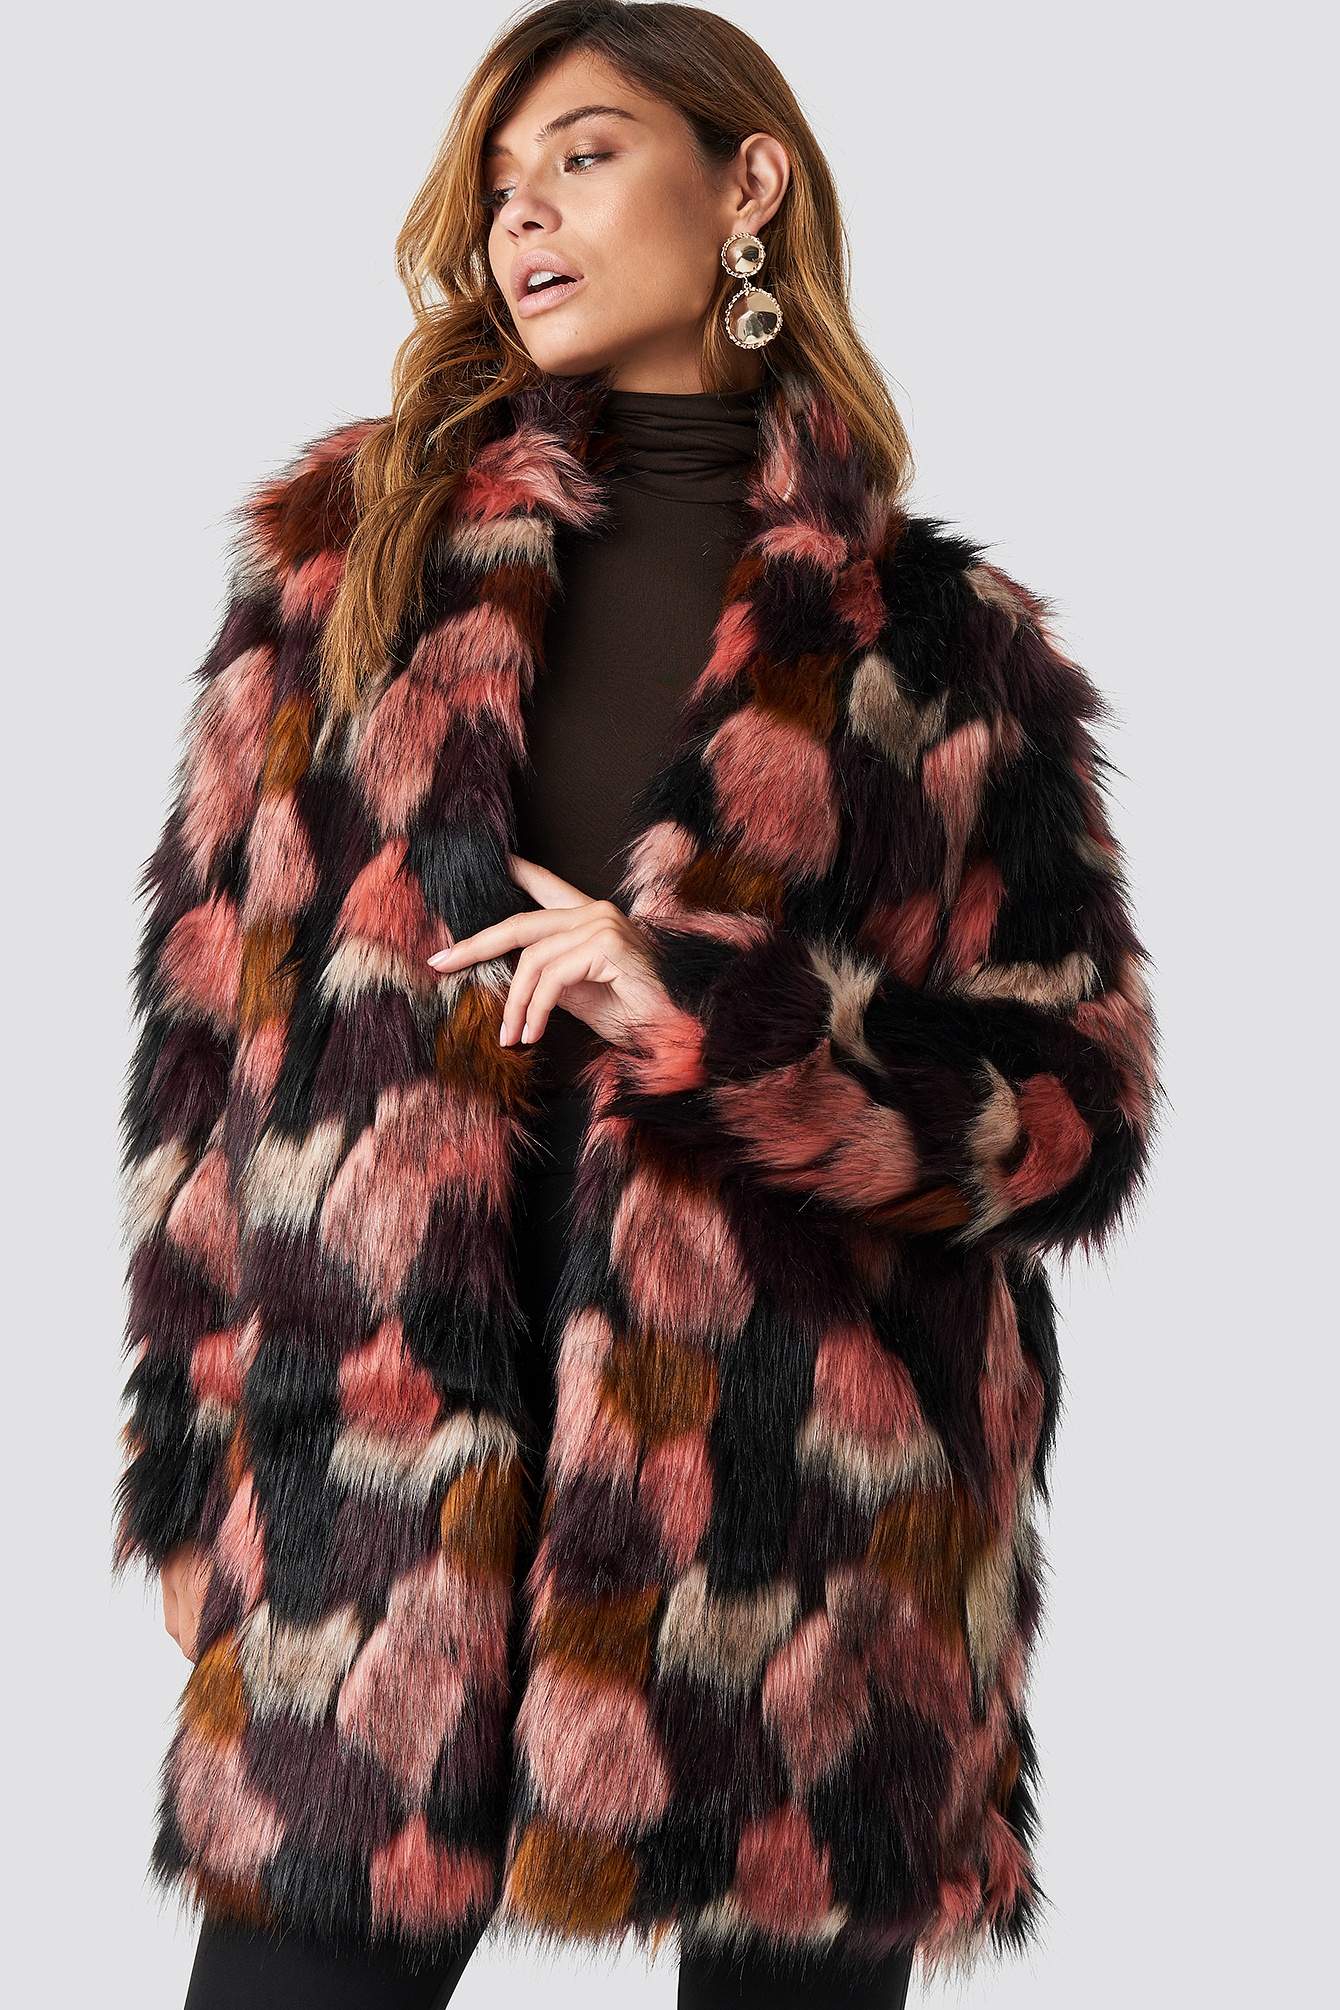 rut&circle -  Tekla Fake Fur Coat - Pink,Multicolor